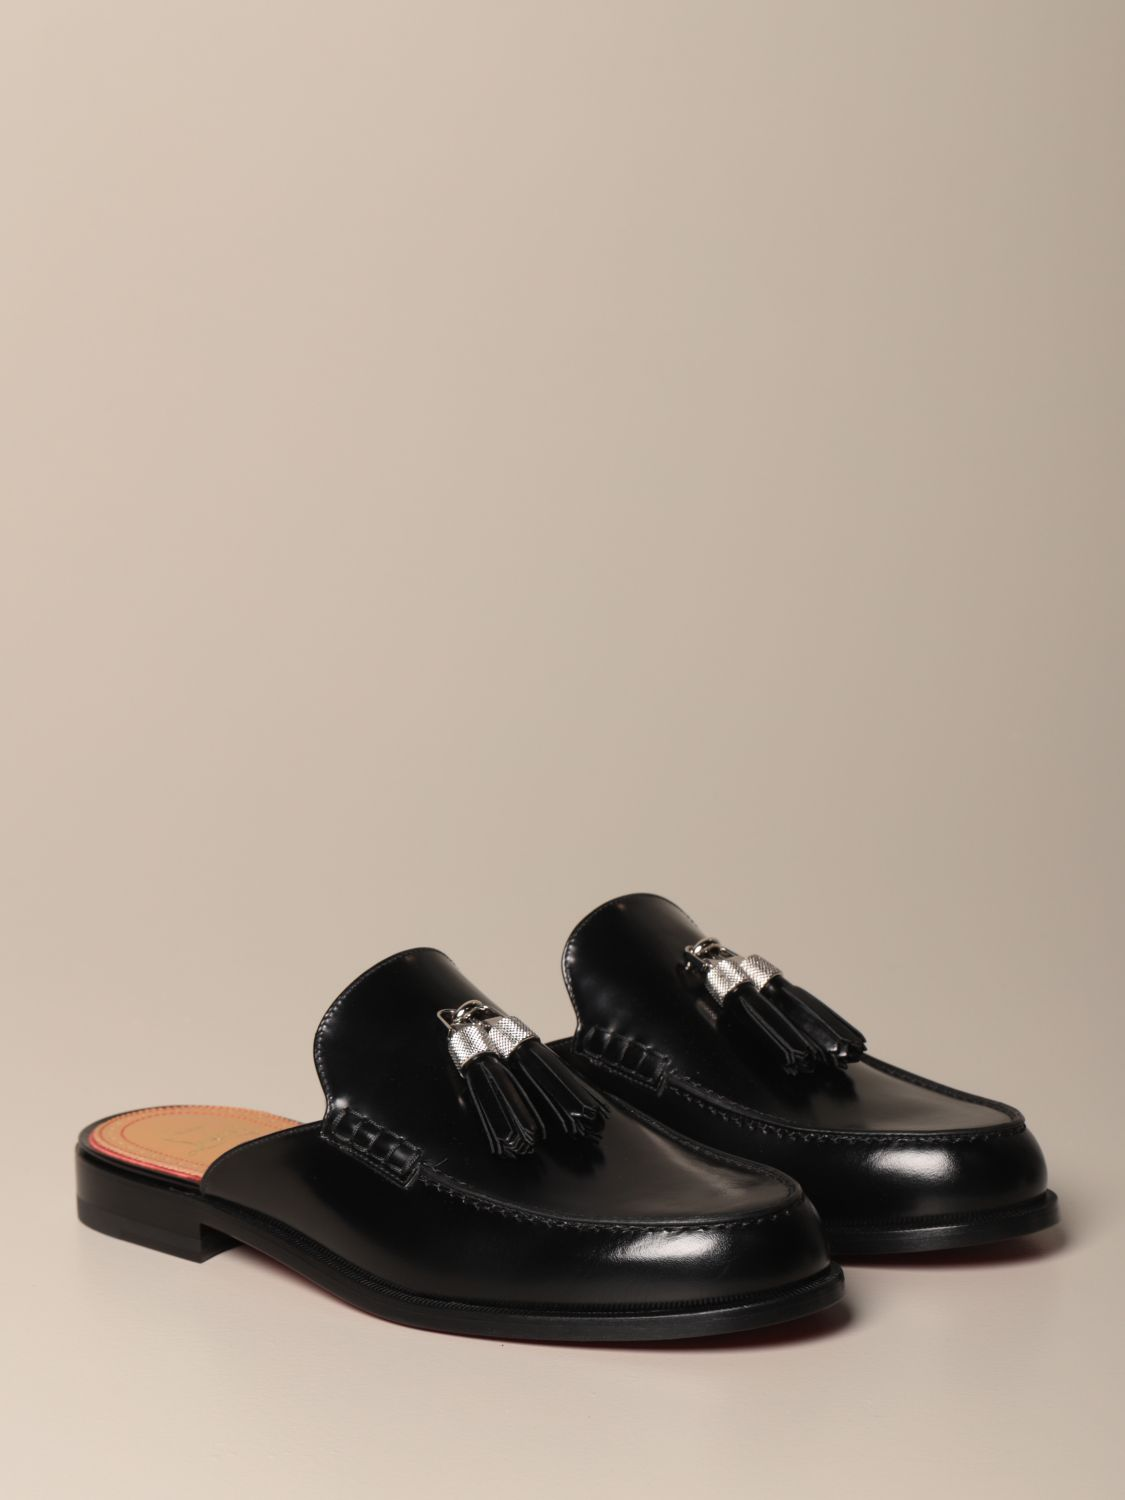 Loafers Christian Louboutin: Rivaslide Christian Louboutin loafer in leather with tassels black 2